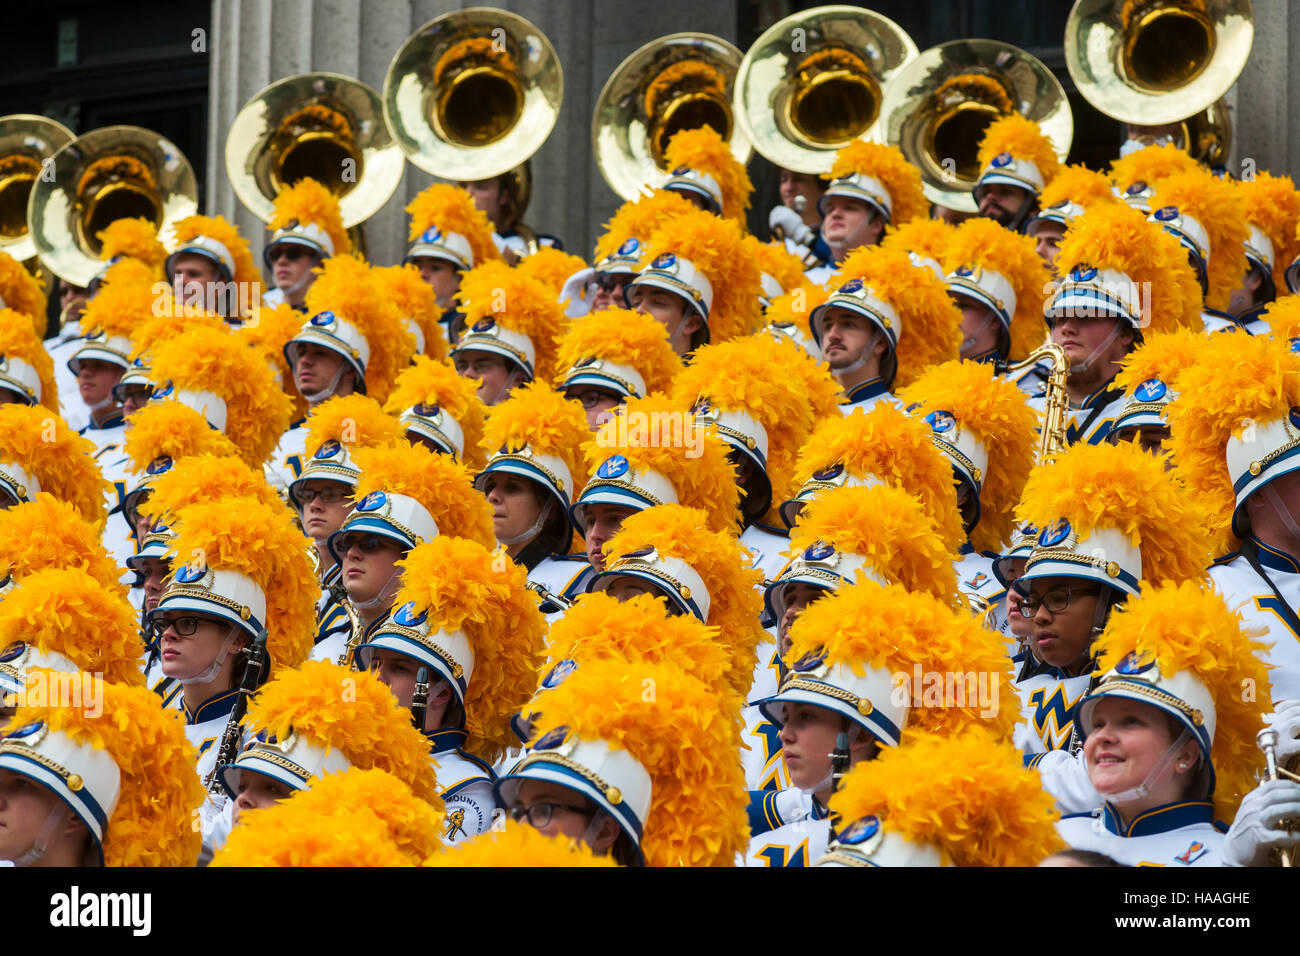 Members of the West Virginia University Mountaineer Marching Band pose for a group photograph after performing in - Stock Image